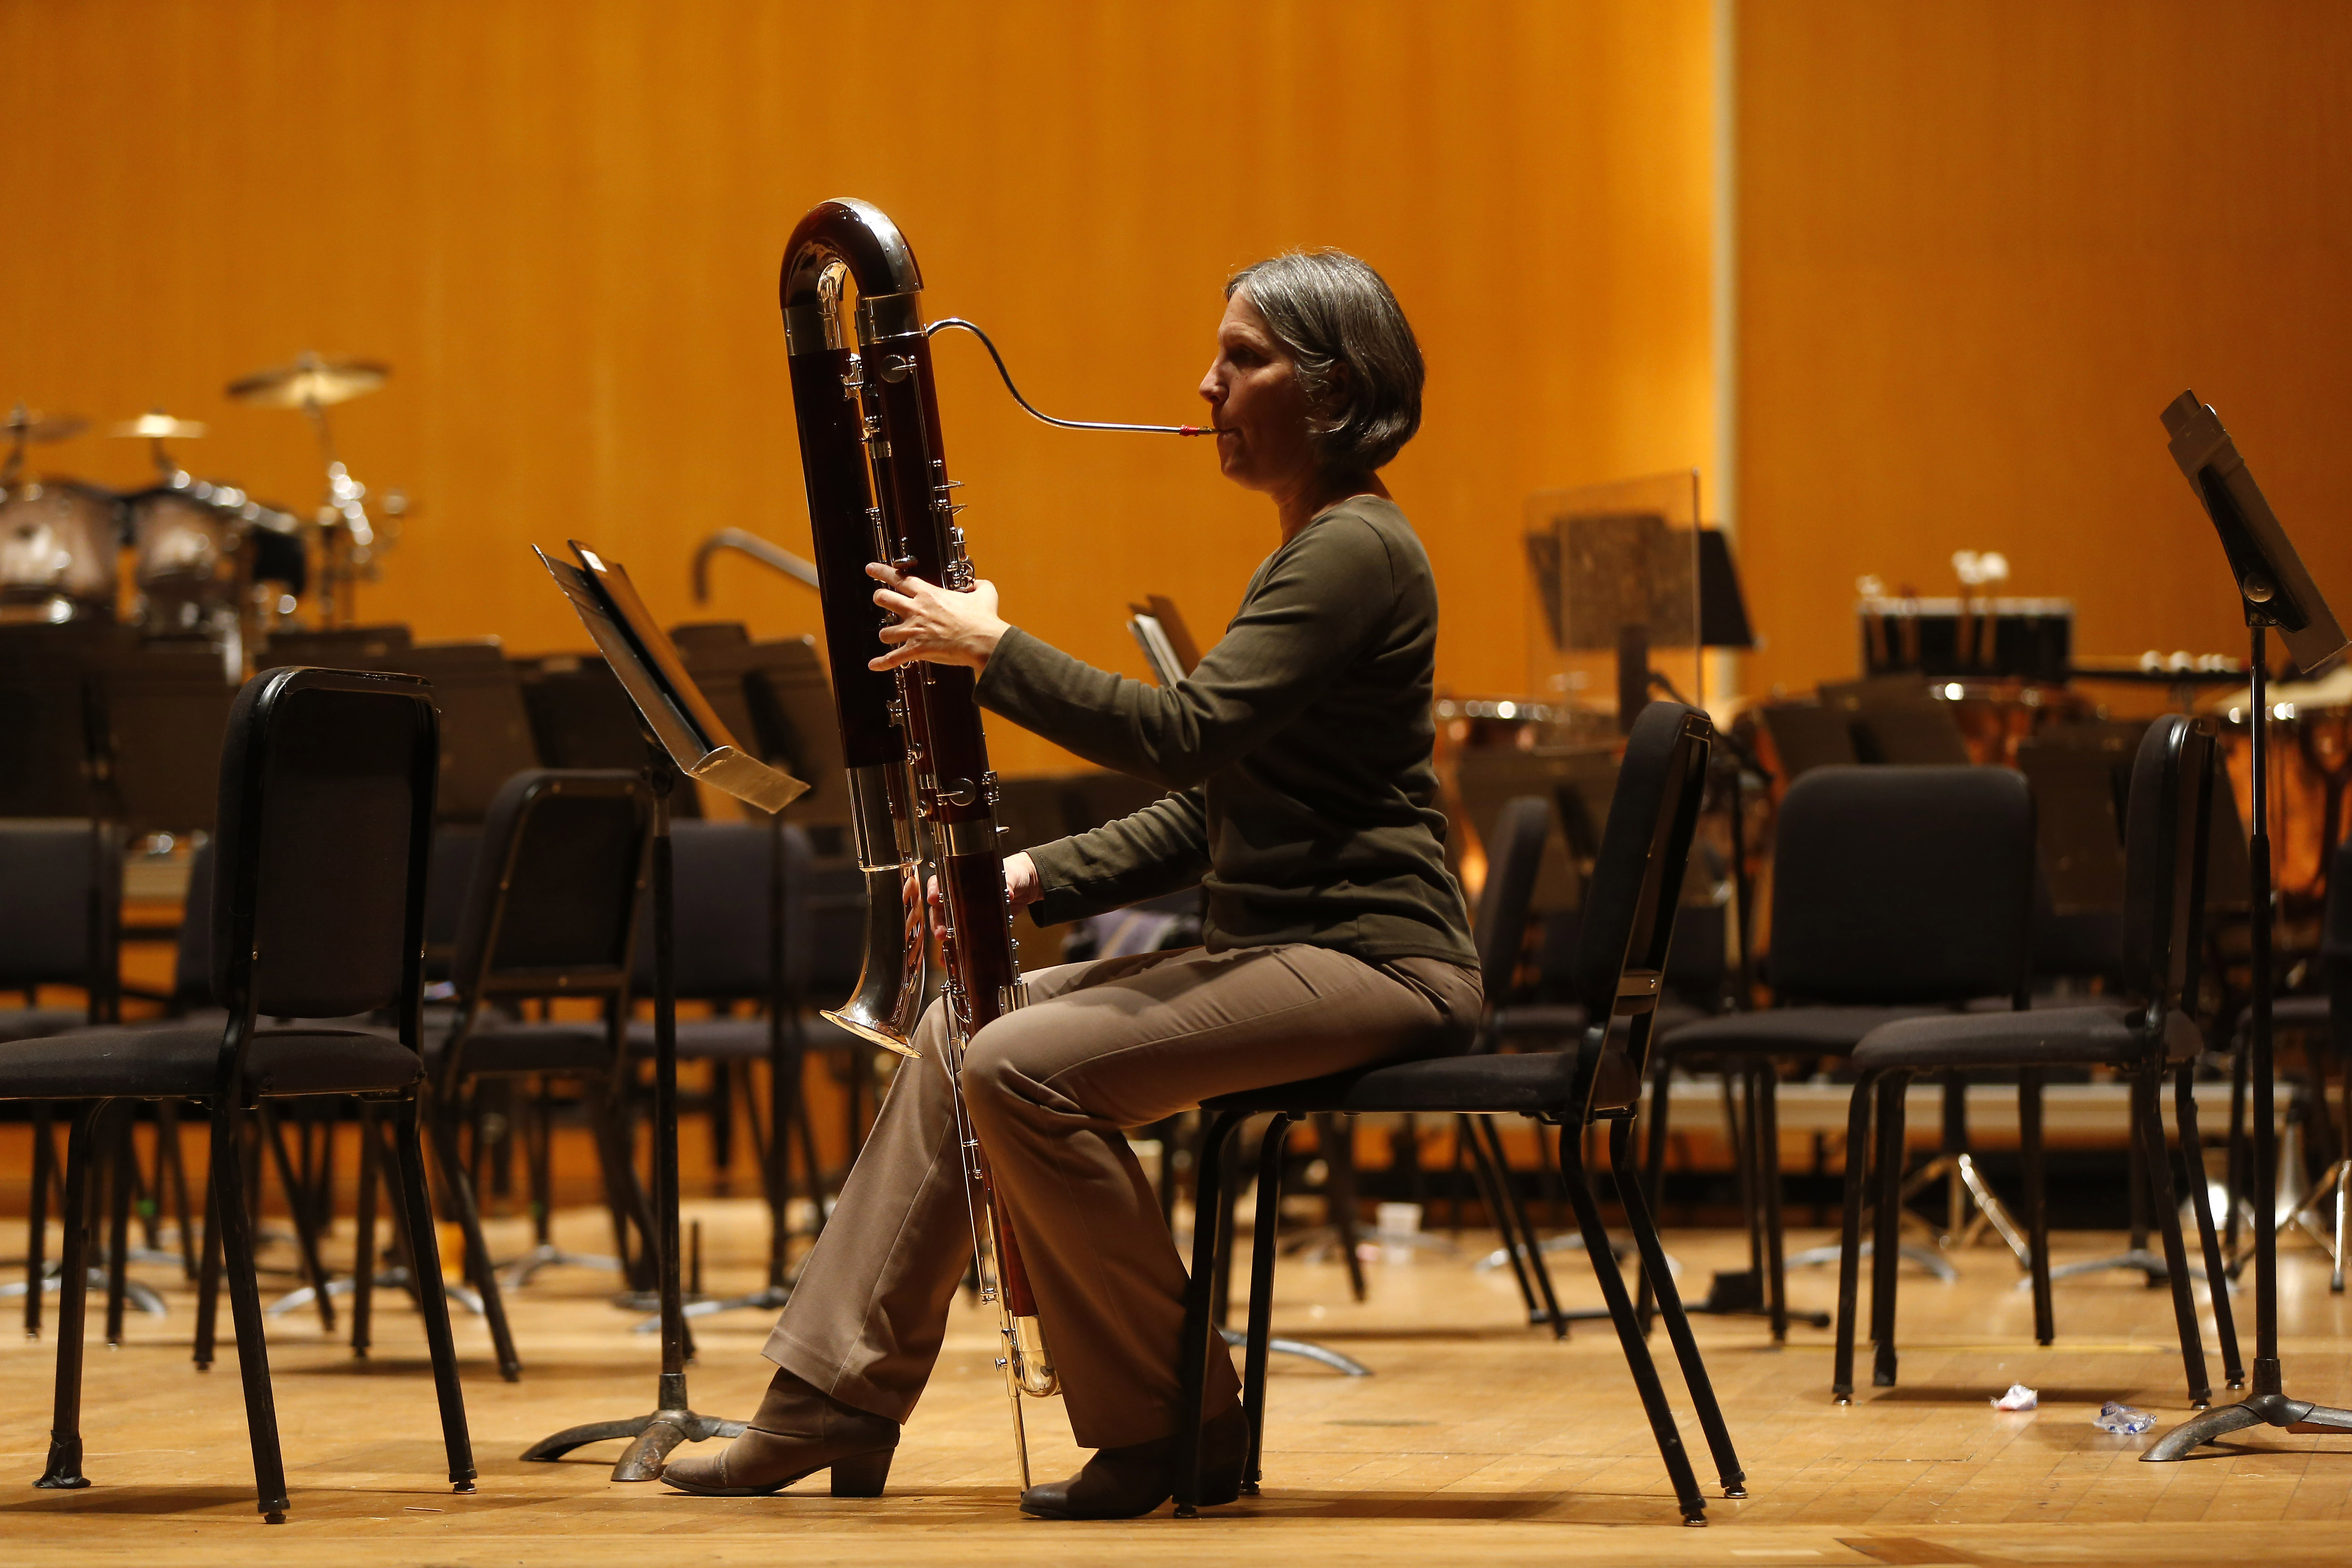 Musician's replacement contrabassoon has 'great sound' – The